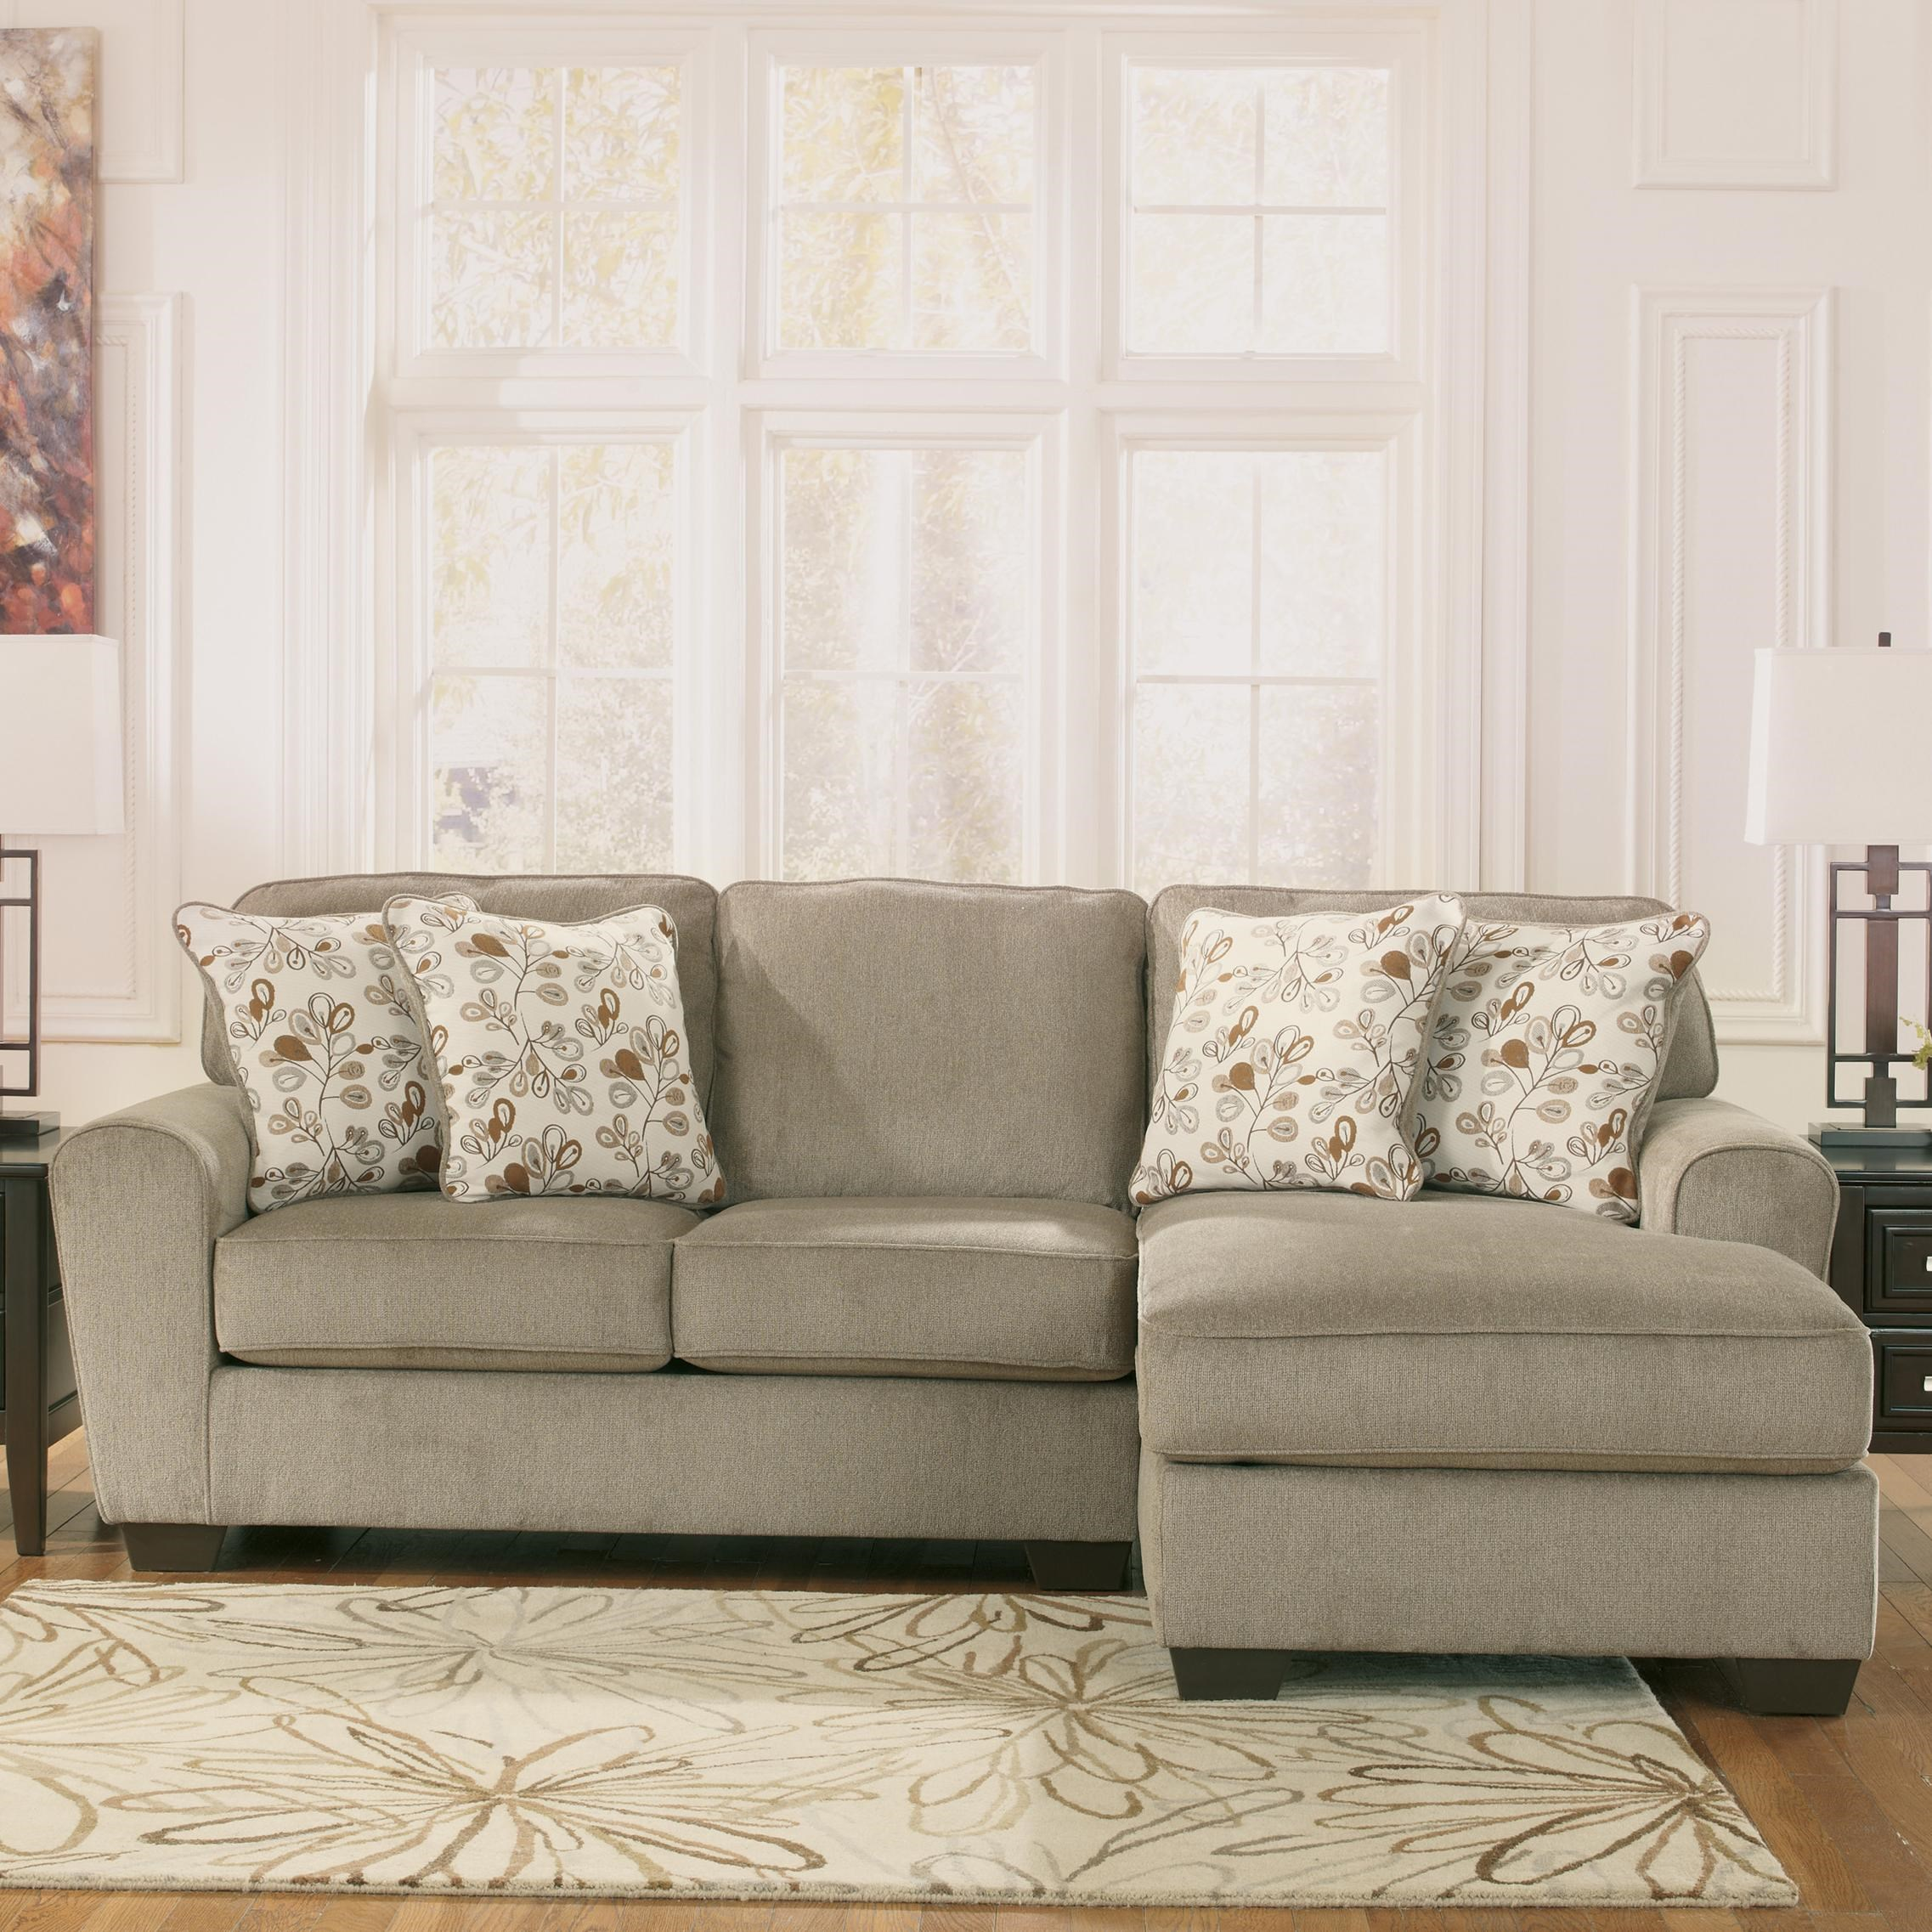 ashley furniture patola park patina 2piece sectional with right chaise john v schultz furniture sofa sectional